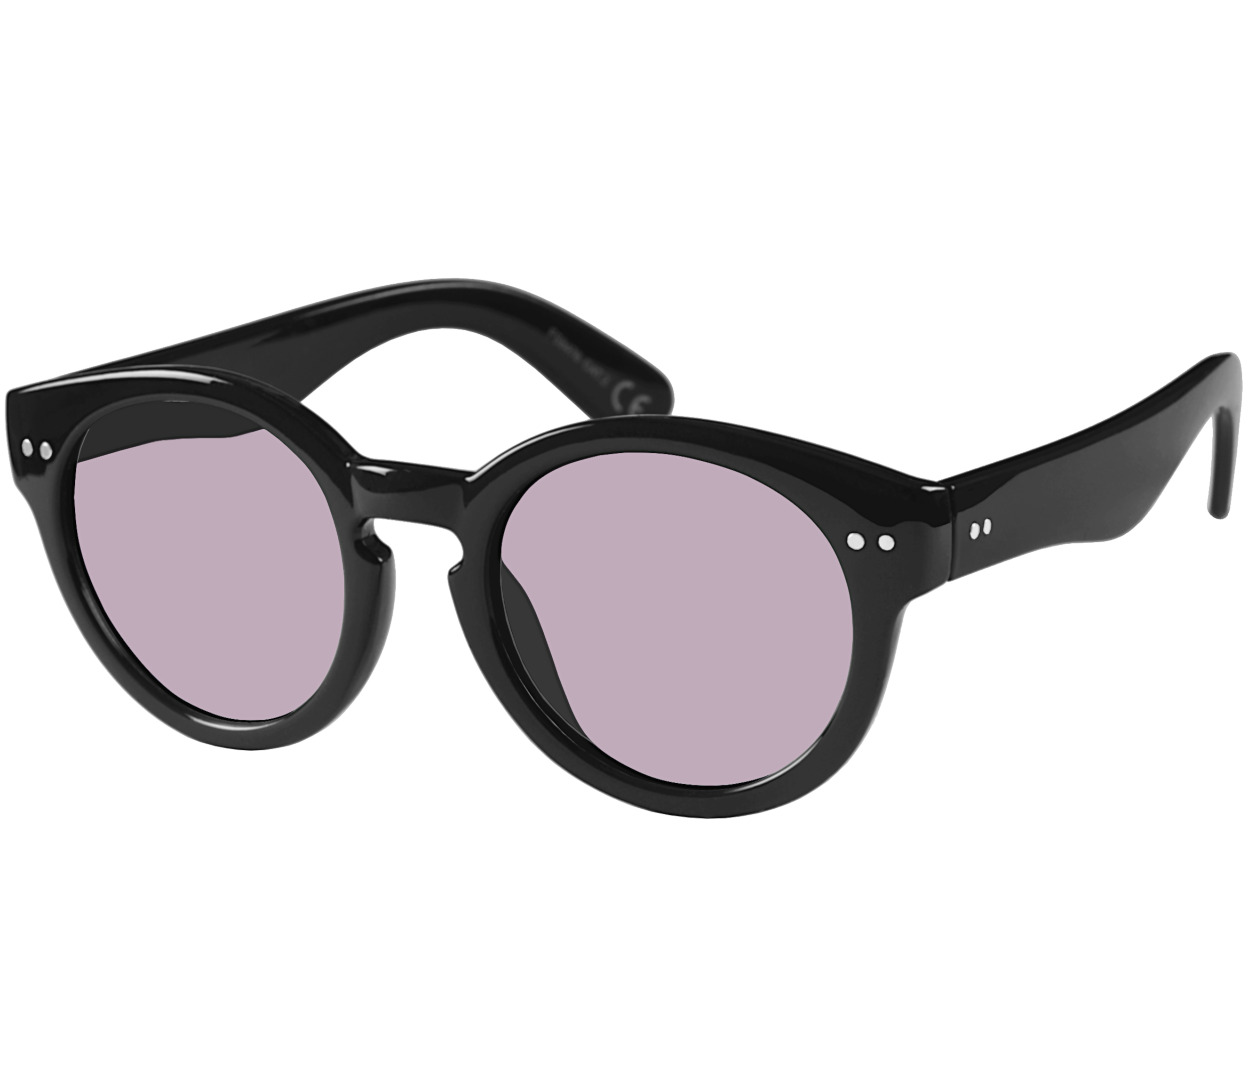 Main Image (Angle) - St Clair (Black) Retro Sunglasses